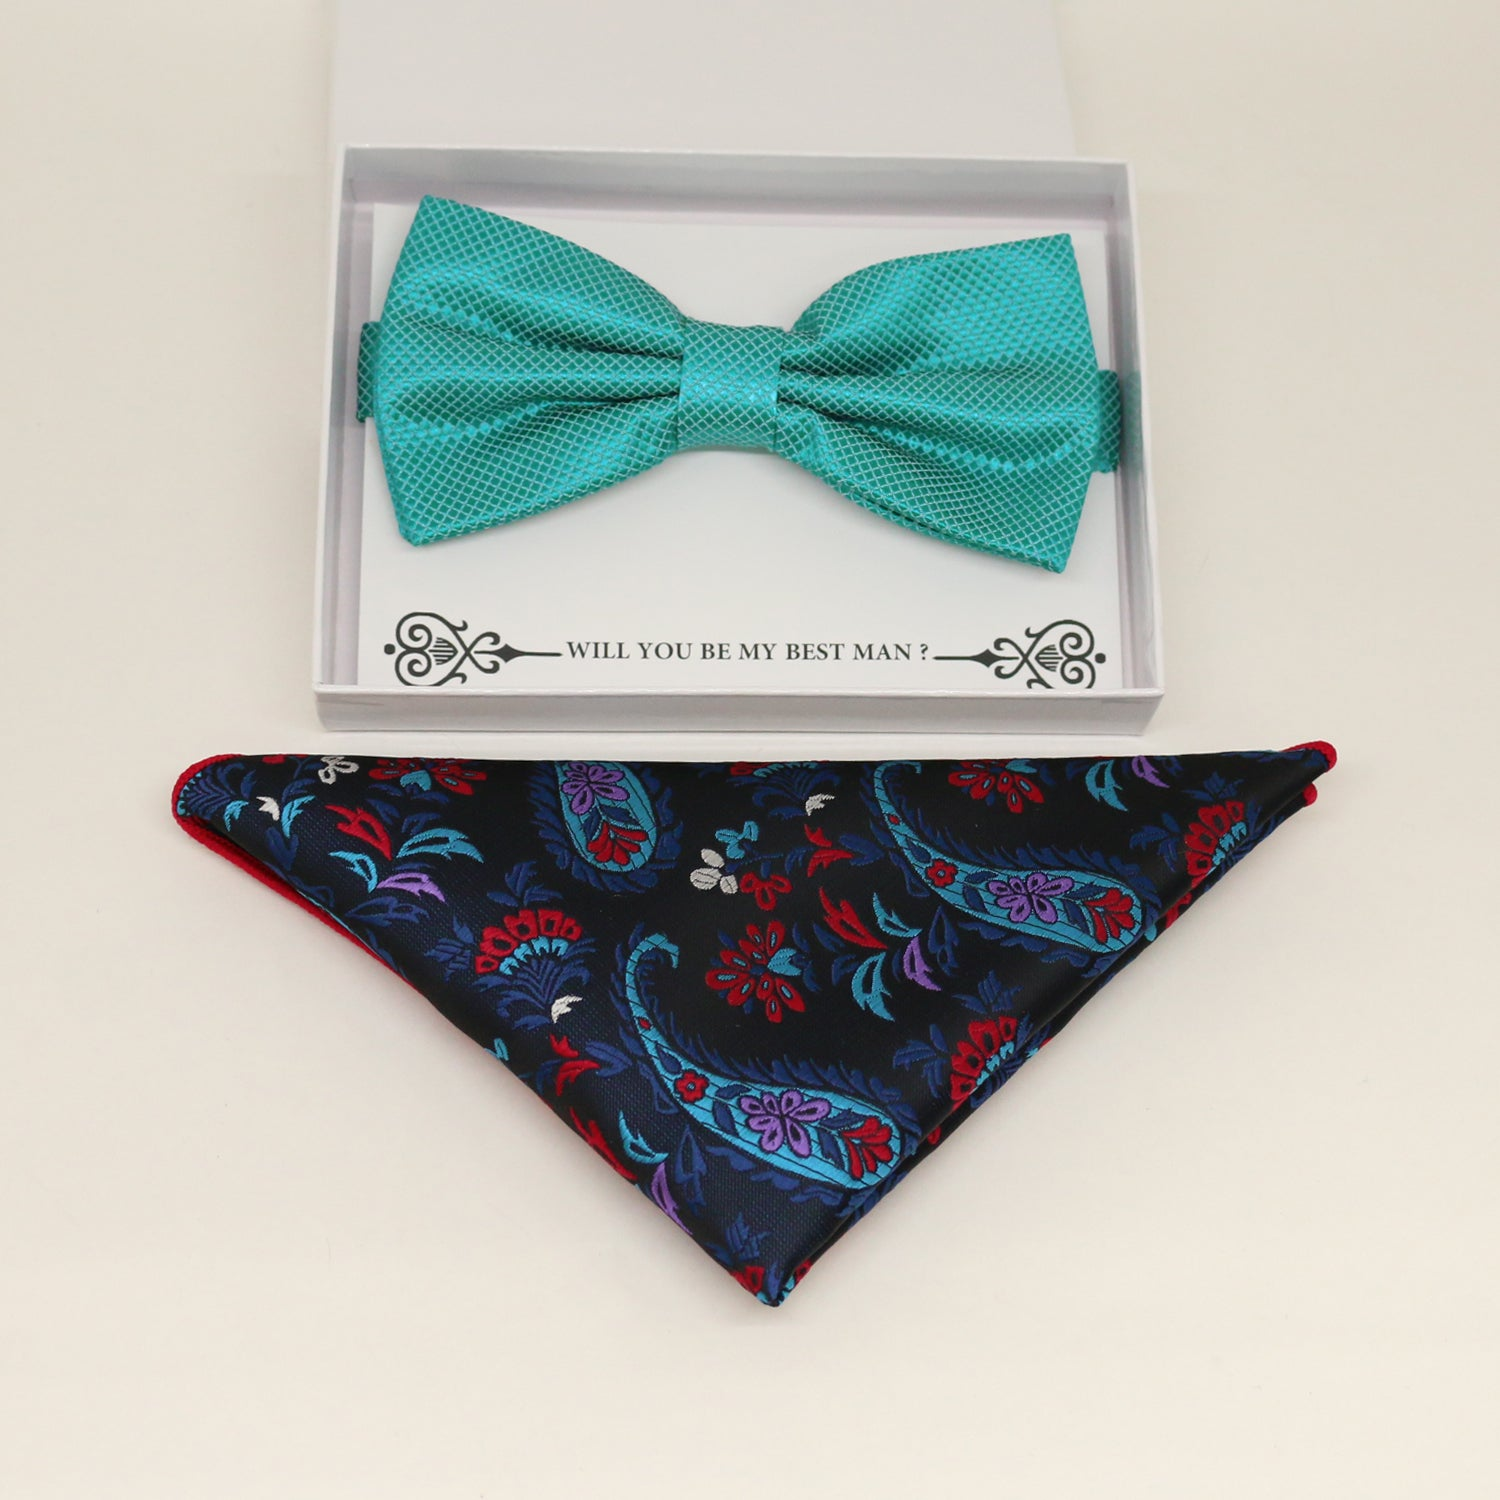 Teal blue bow tie & paisley Pocket Square, Best man Groomsman Man of honor ring breaer bow tie, birthday gift, Congrats grad, handkerchief